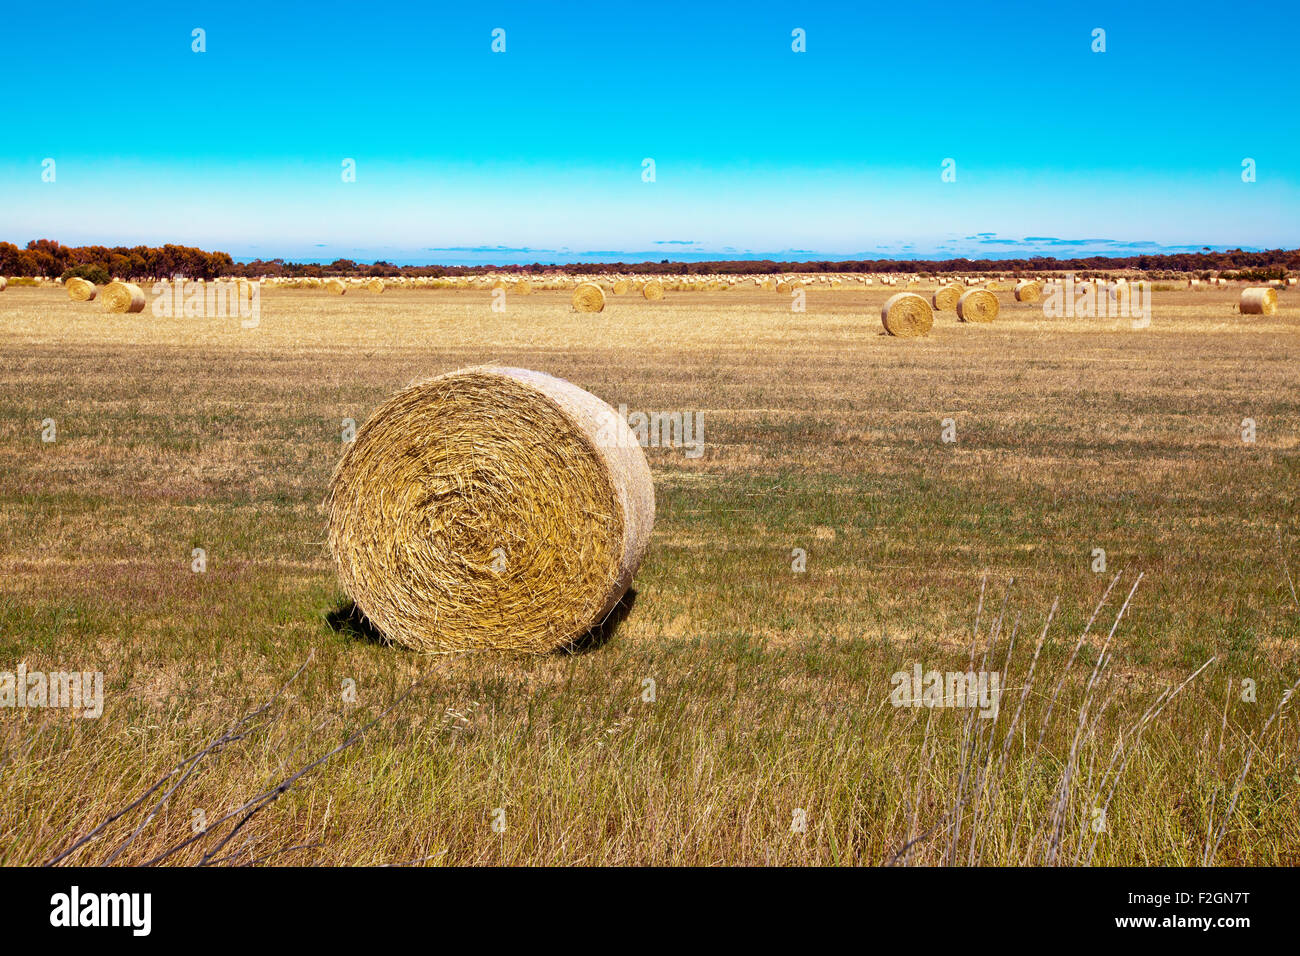 Round hay bails sit in the field after harvesting - Stock Image